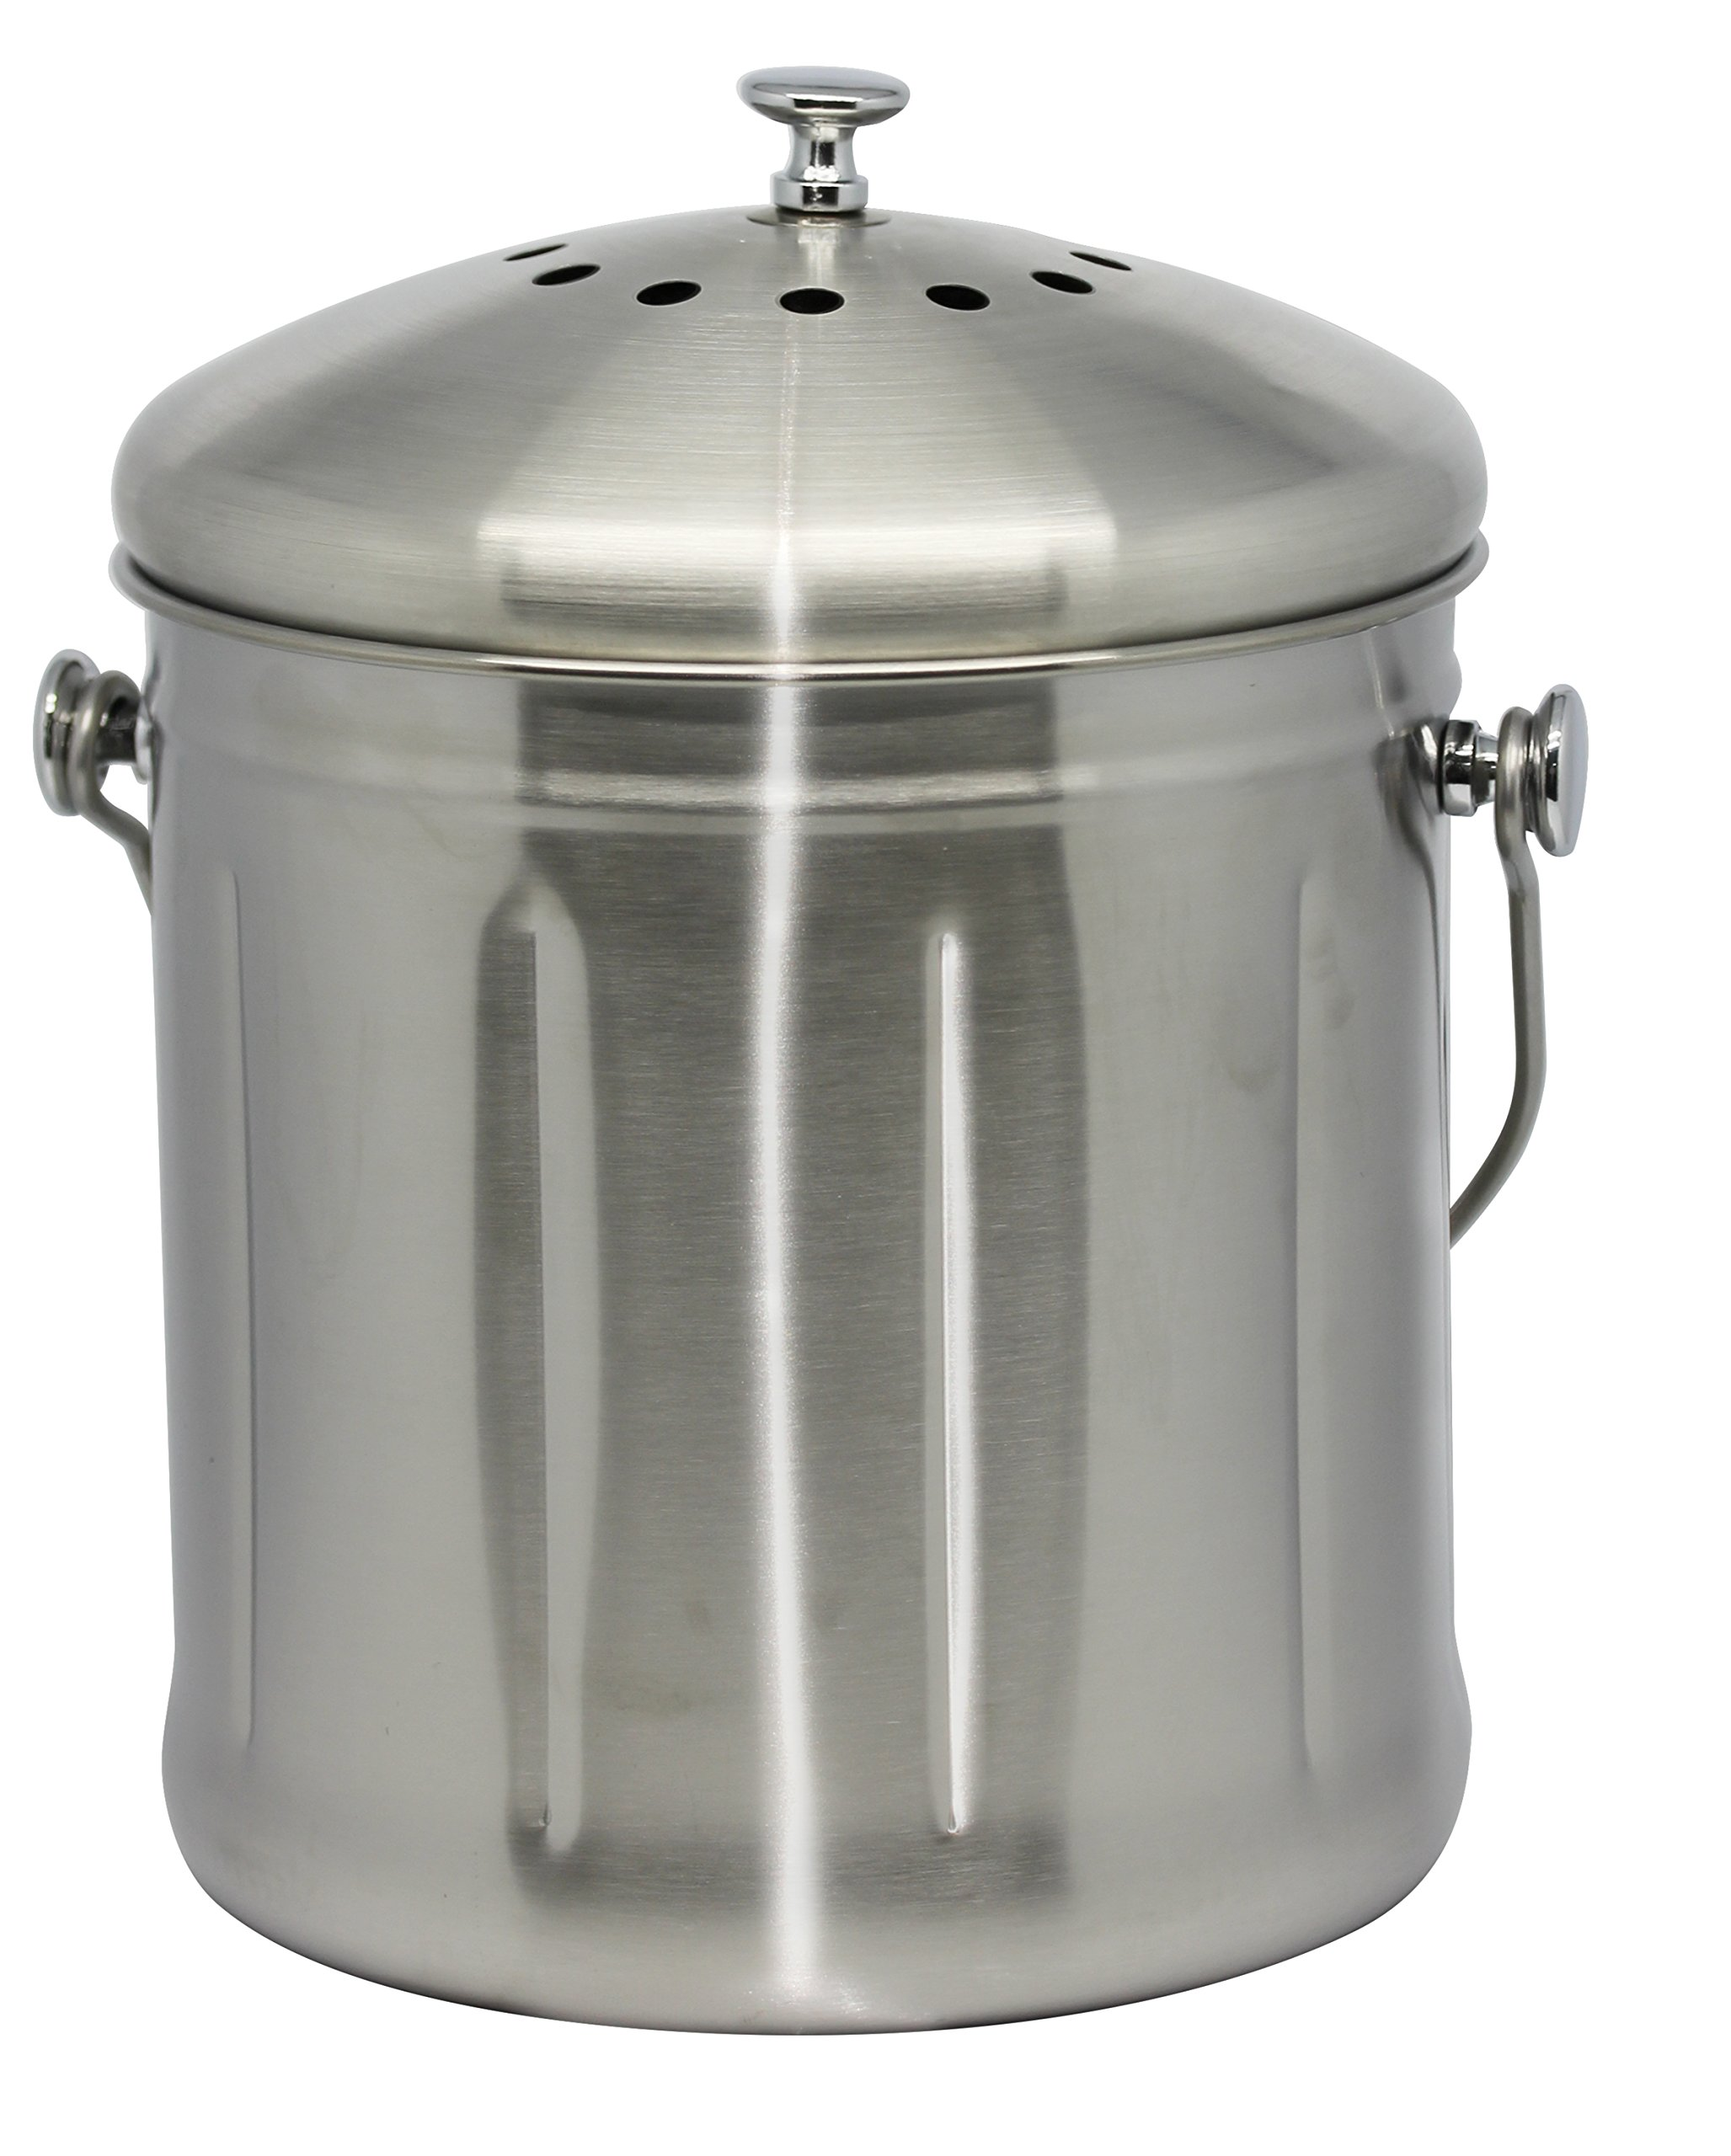 Natural Home Stainless Steel Compost Bin, 1.8-Gallon, Stainless Steel